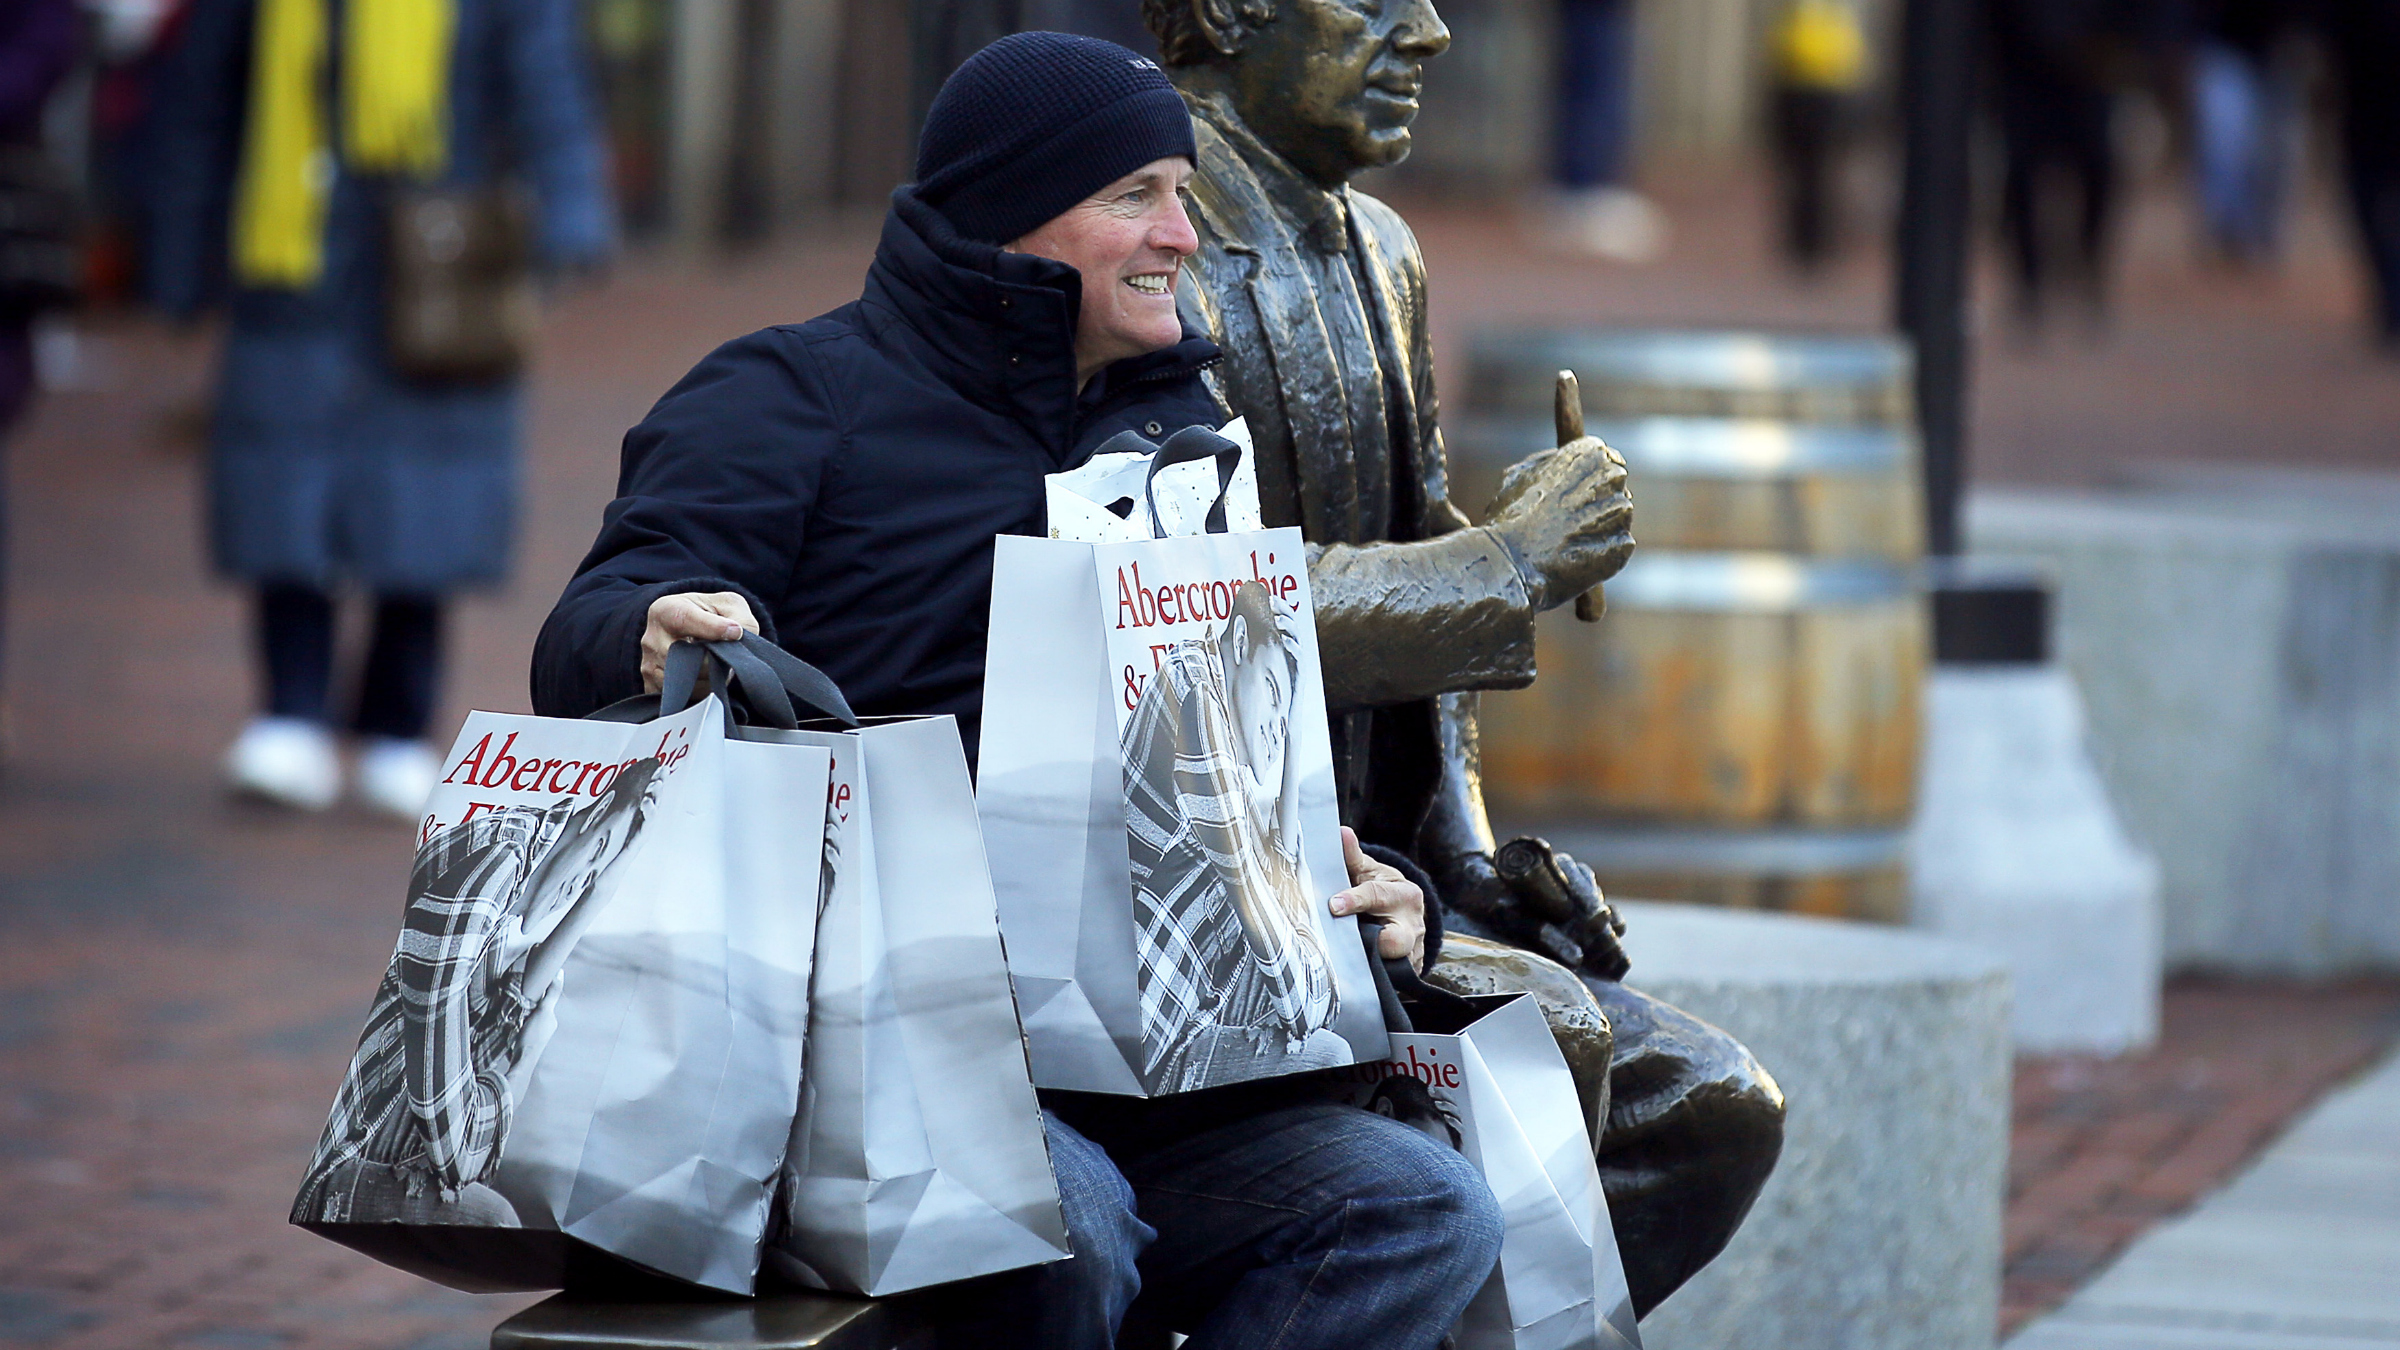 Man shopping bags